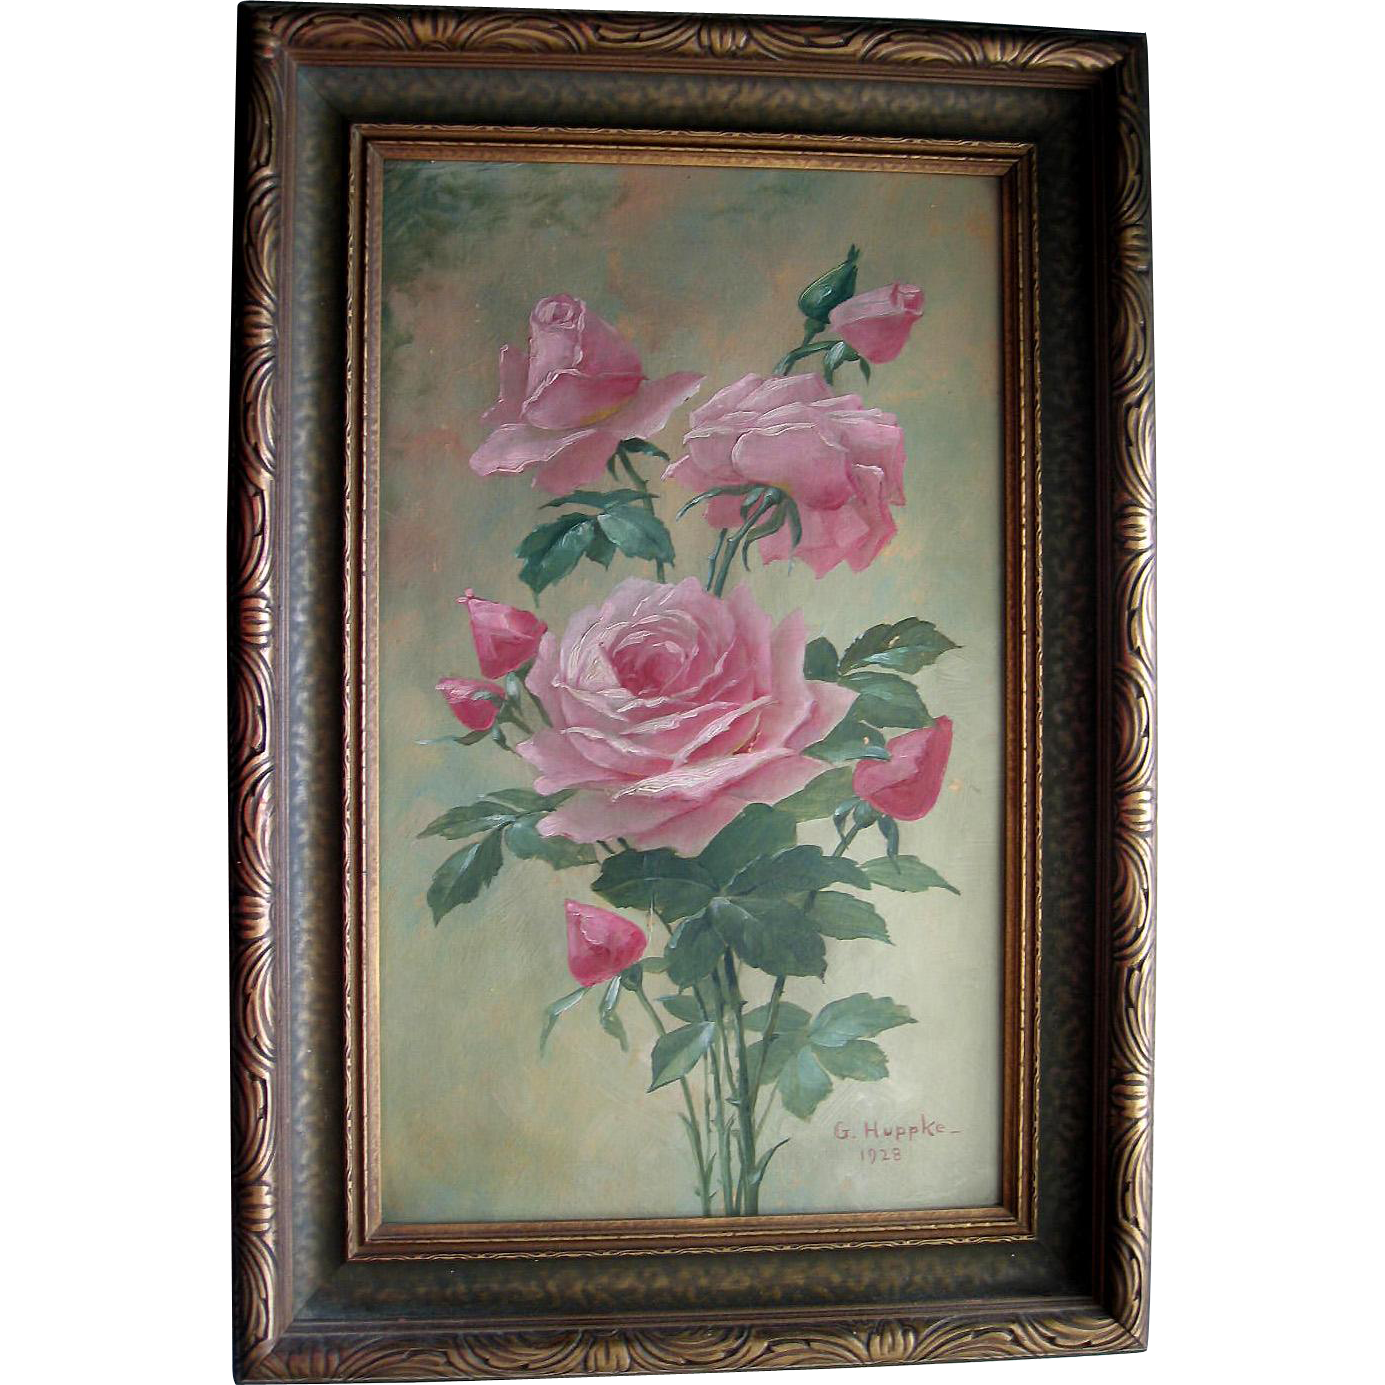 c1928 Pink Roses Oil Painting Signed Half Yard Long